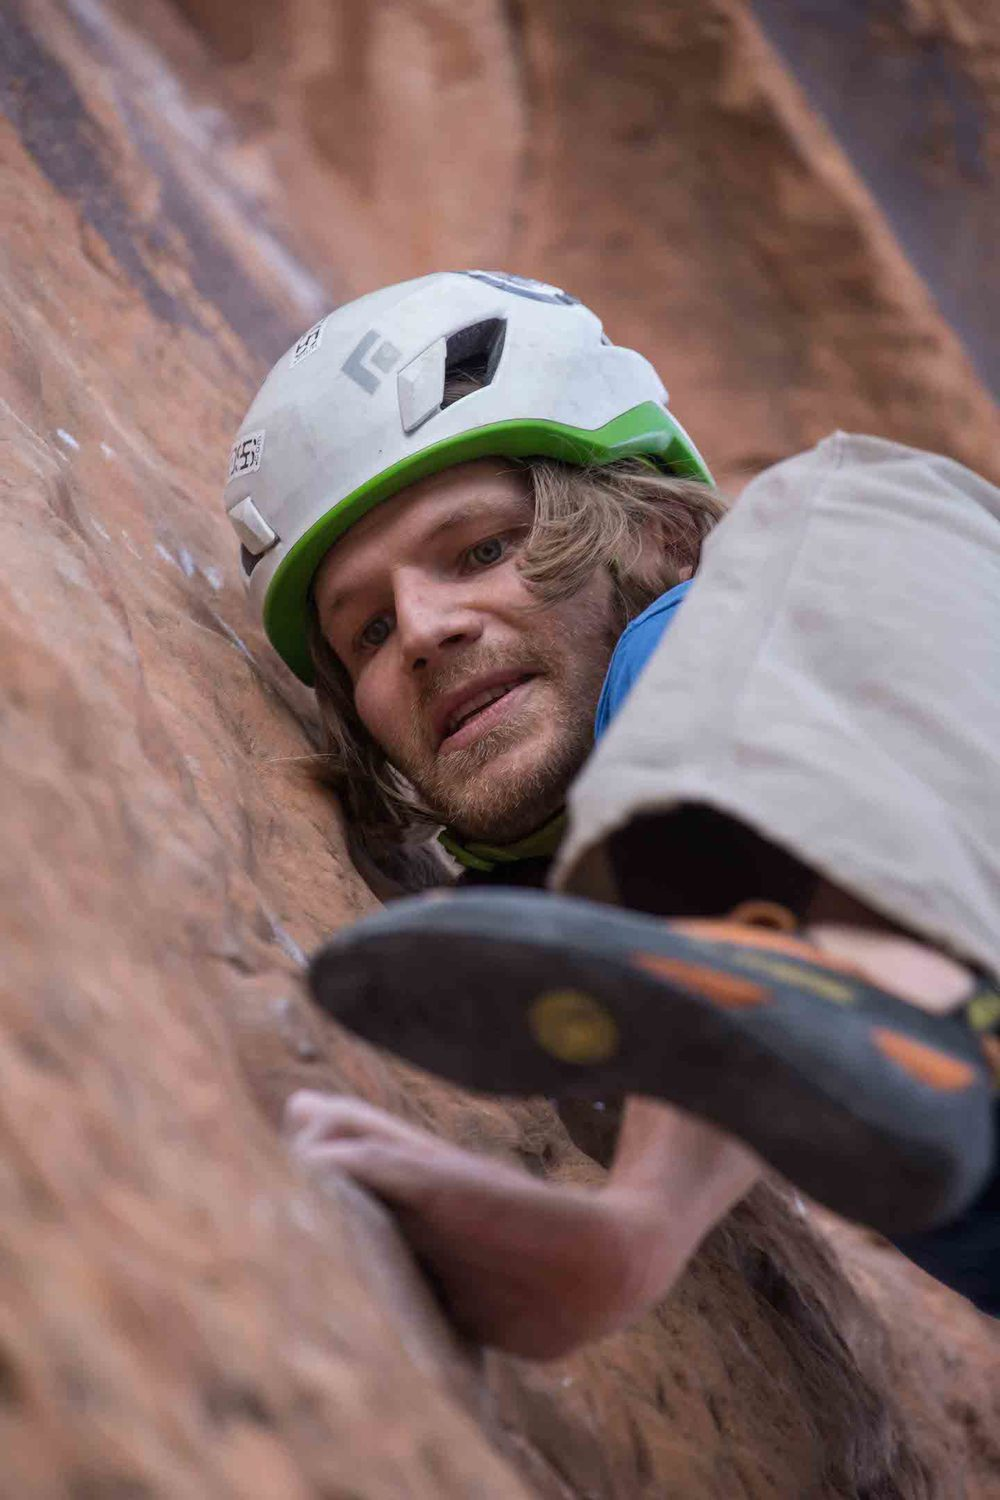 Onsighting  Fistful of Potash  (5.10a) in Moab, five months after surgery. Photo by Gregg Trawinski